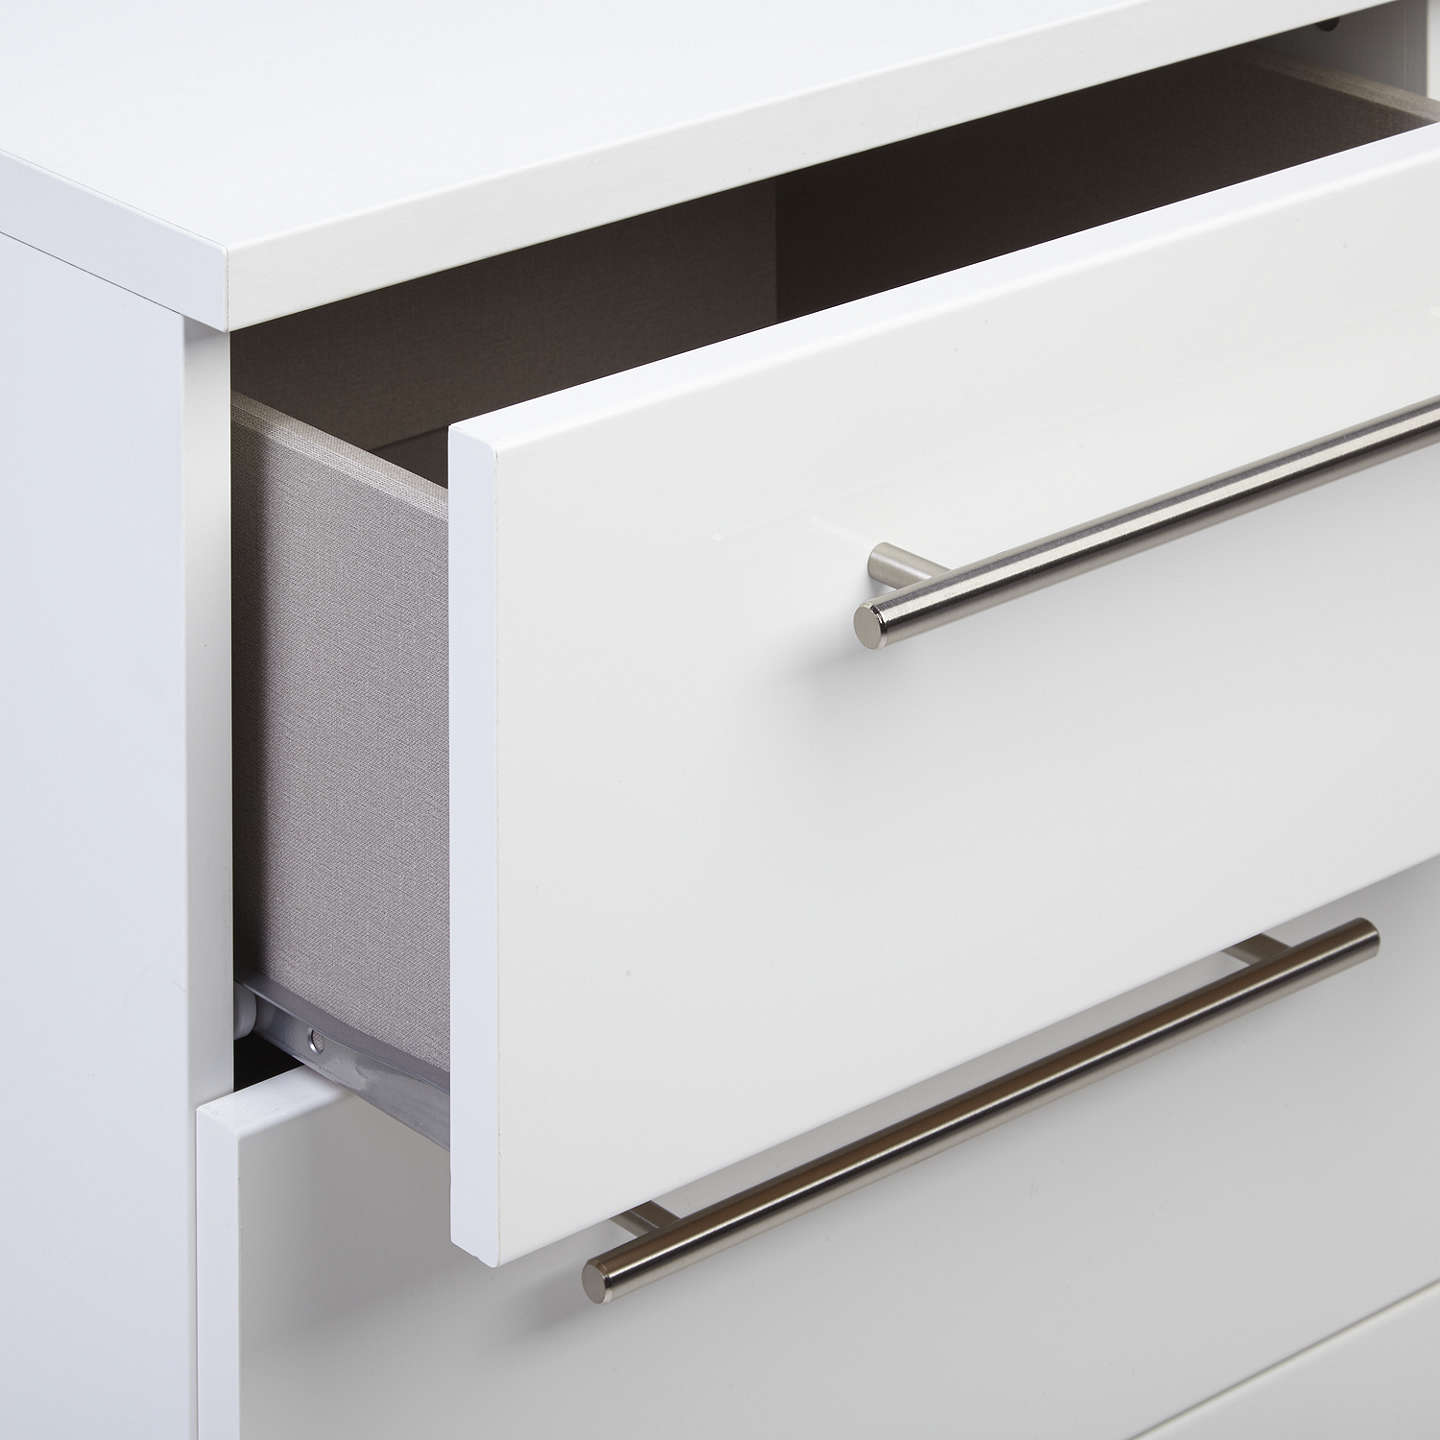 BuyHouse by John Lewis Mix it T-Bar Handle Narrow 4 Drawer Chest, Gloss White/Matt White Online at johnlewis.com